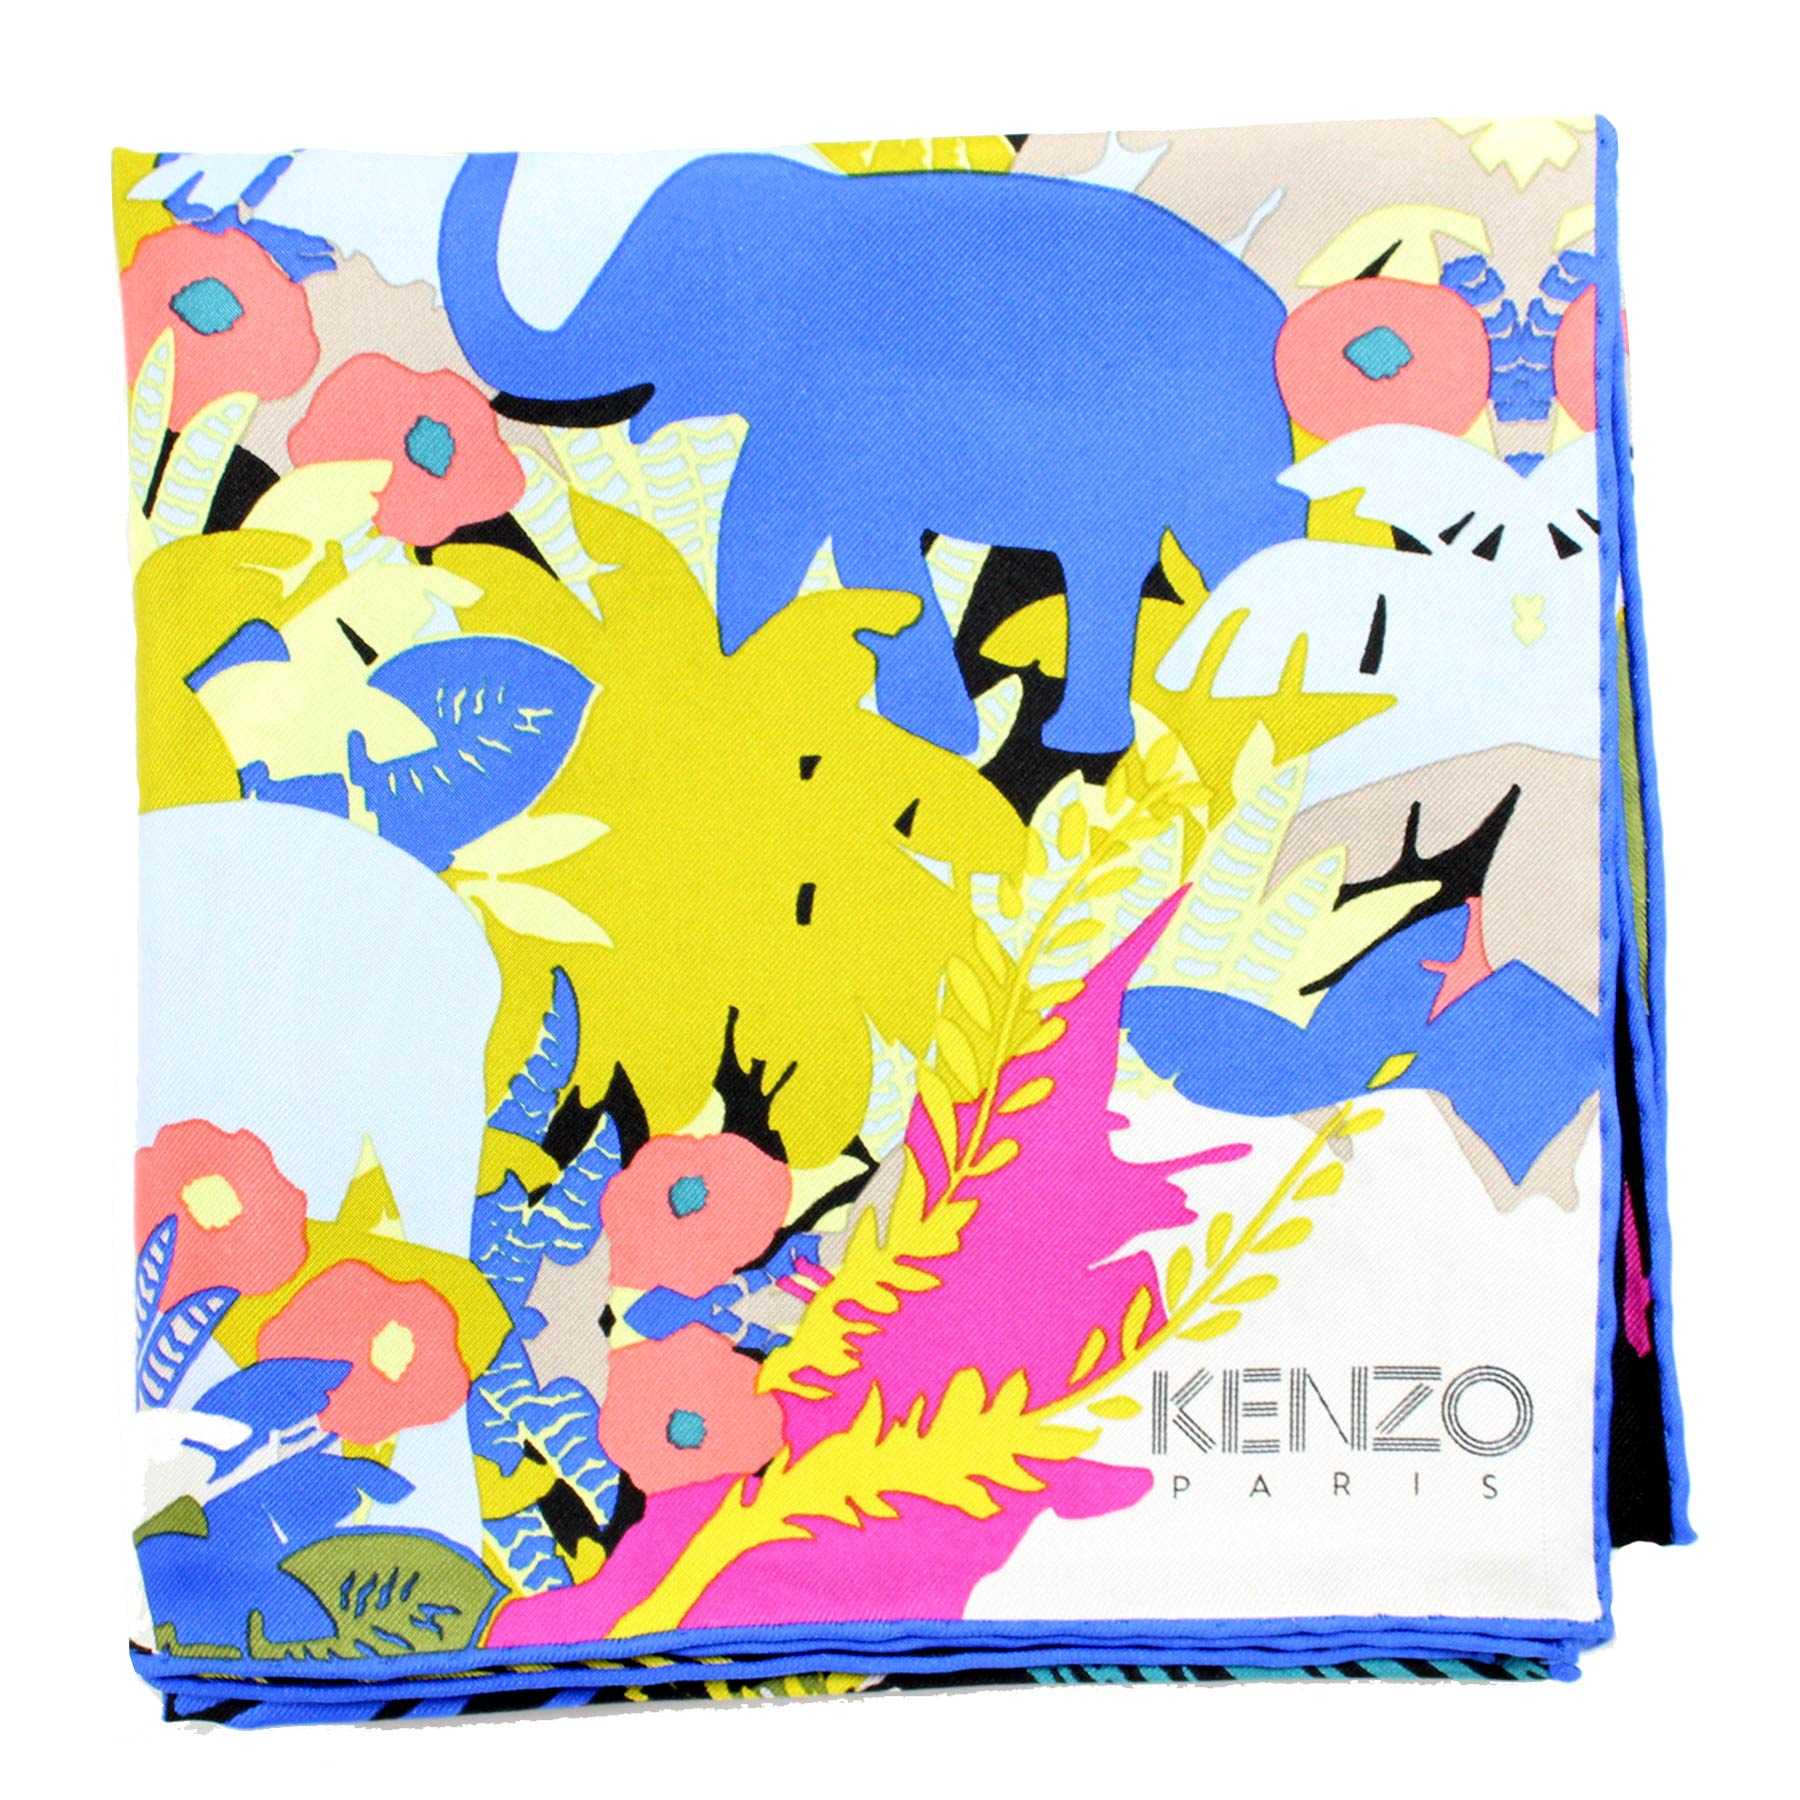 Kenzo Scarf Royal Blue Olive Gray Leaves